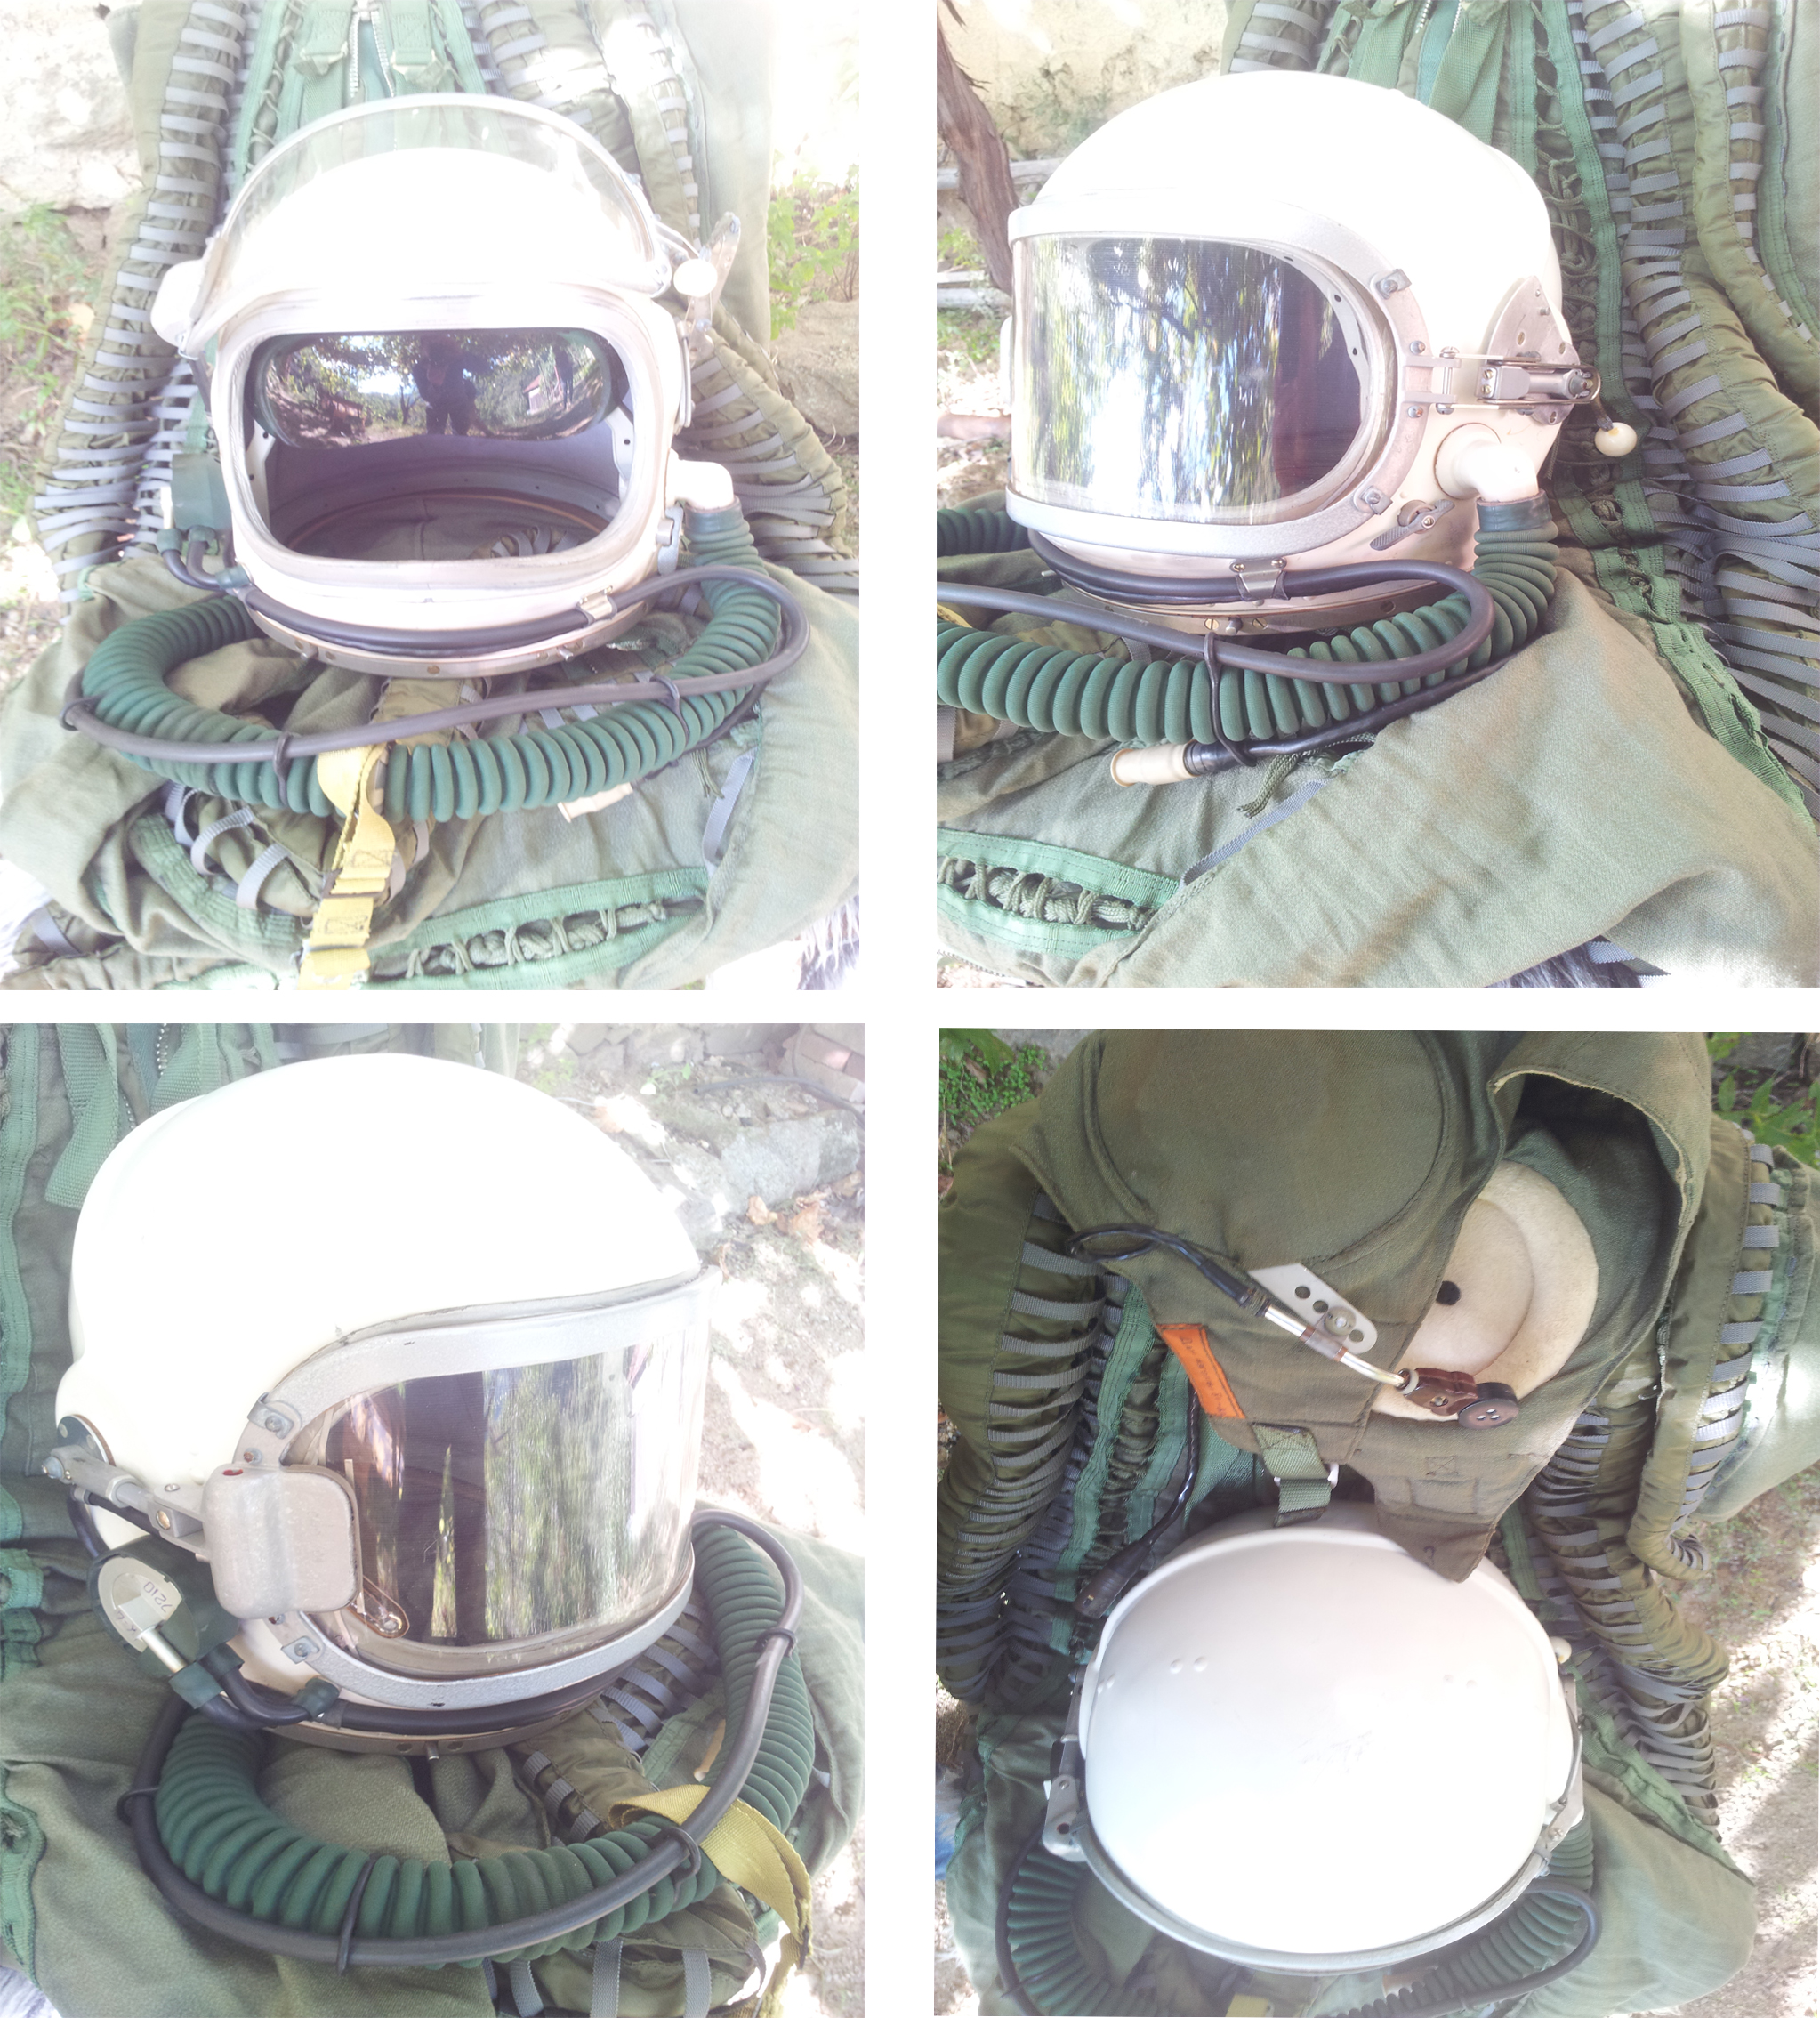 Flight pilot Helmet Pressure suit Cold War MIG 25 1.jpg